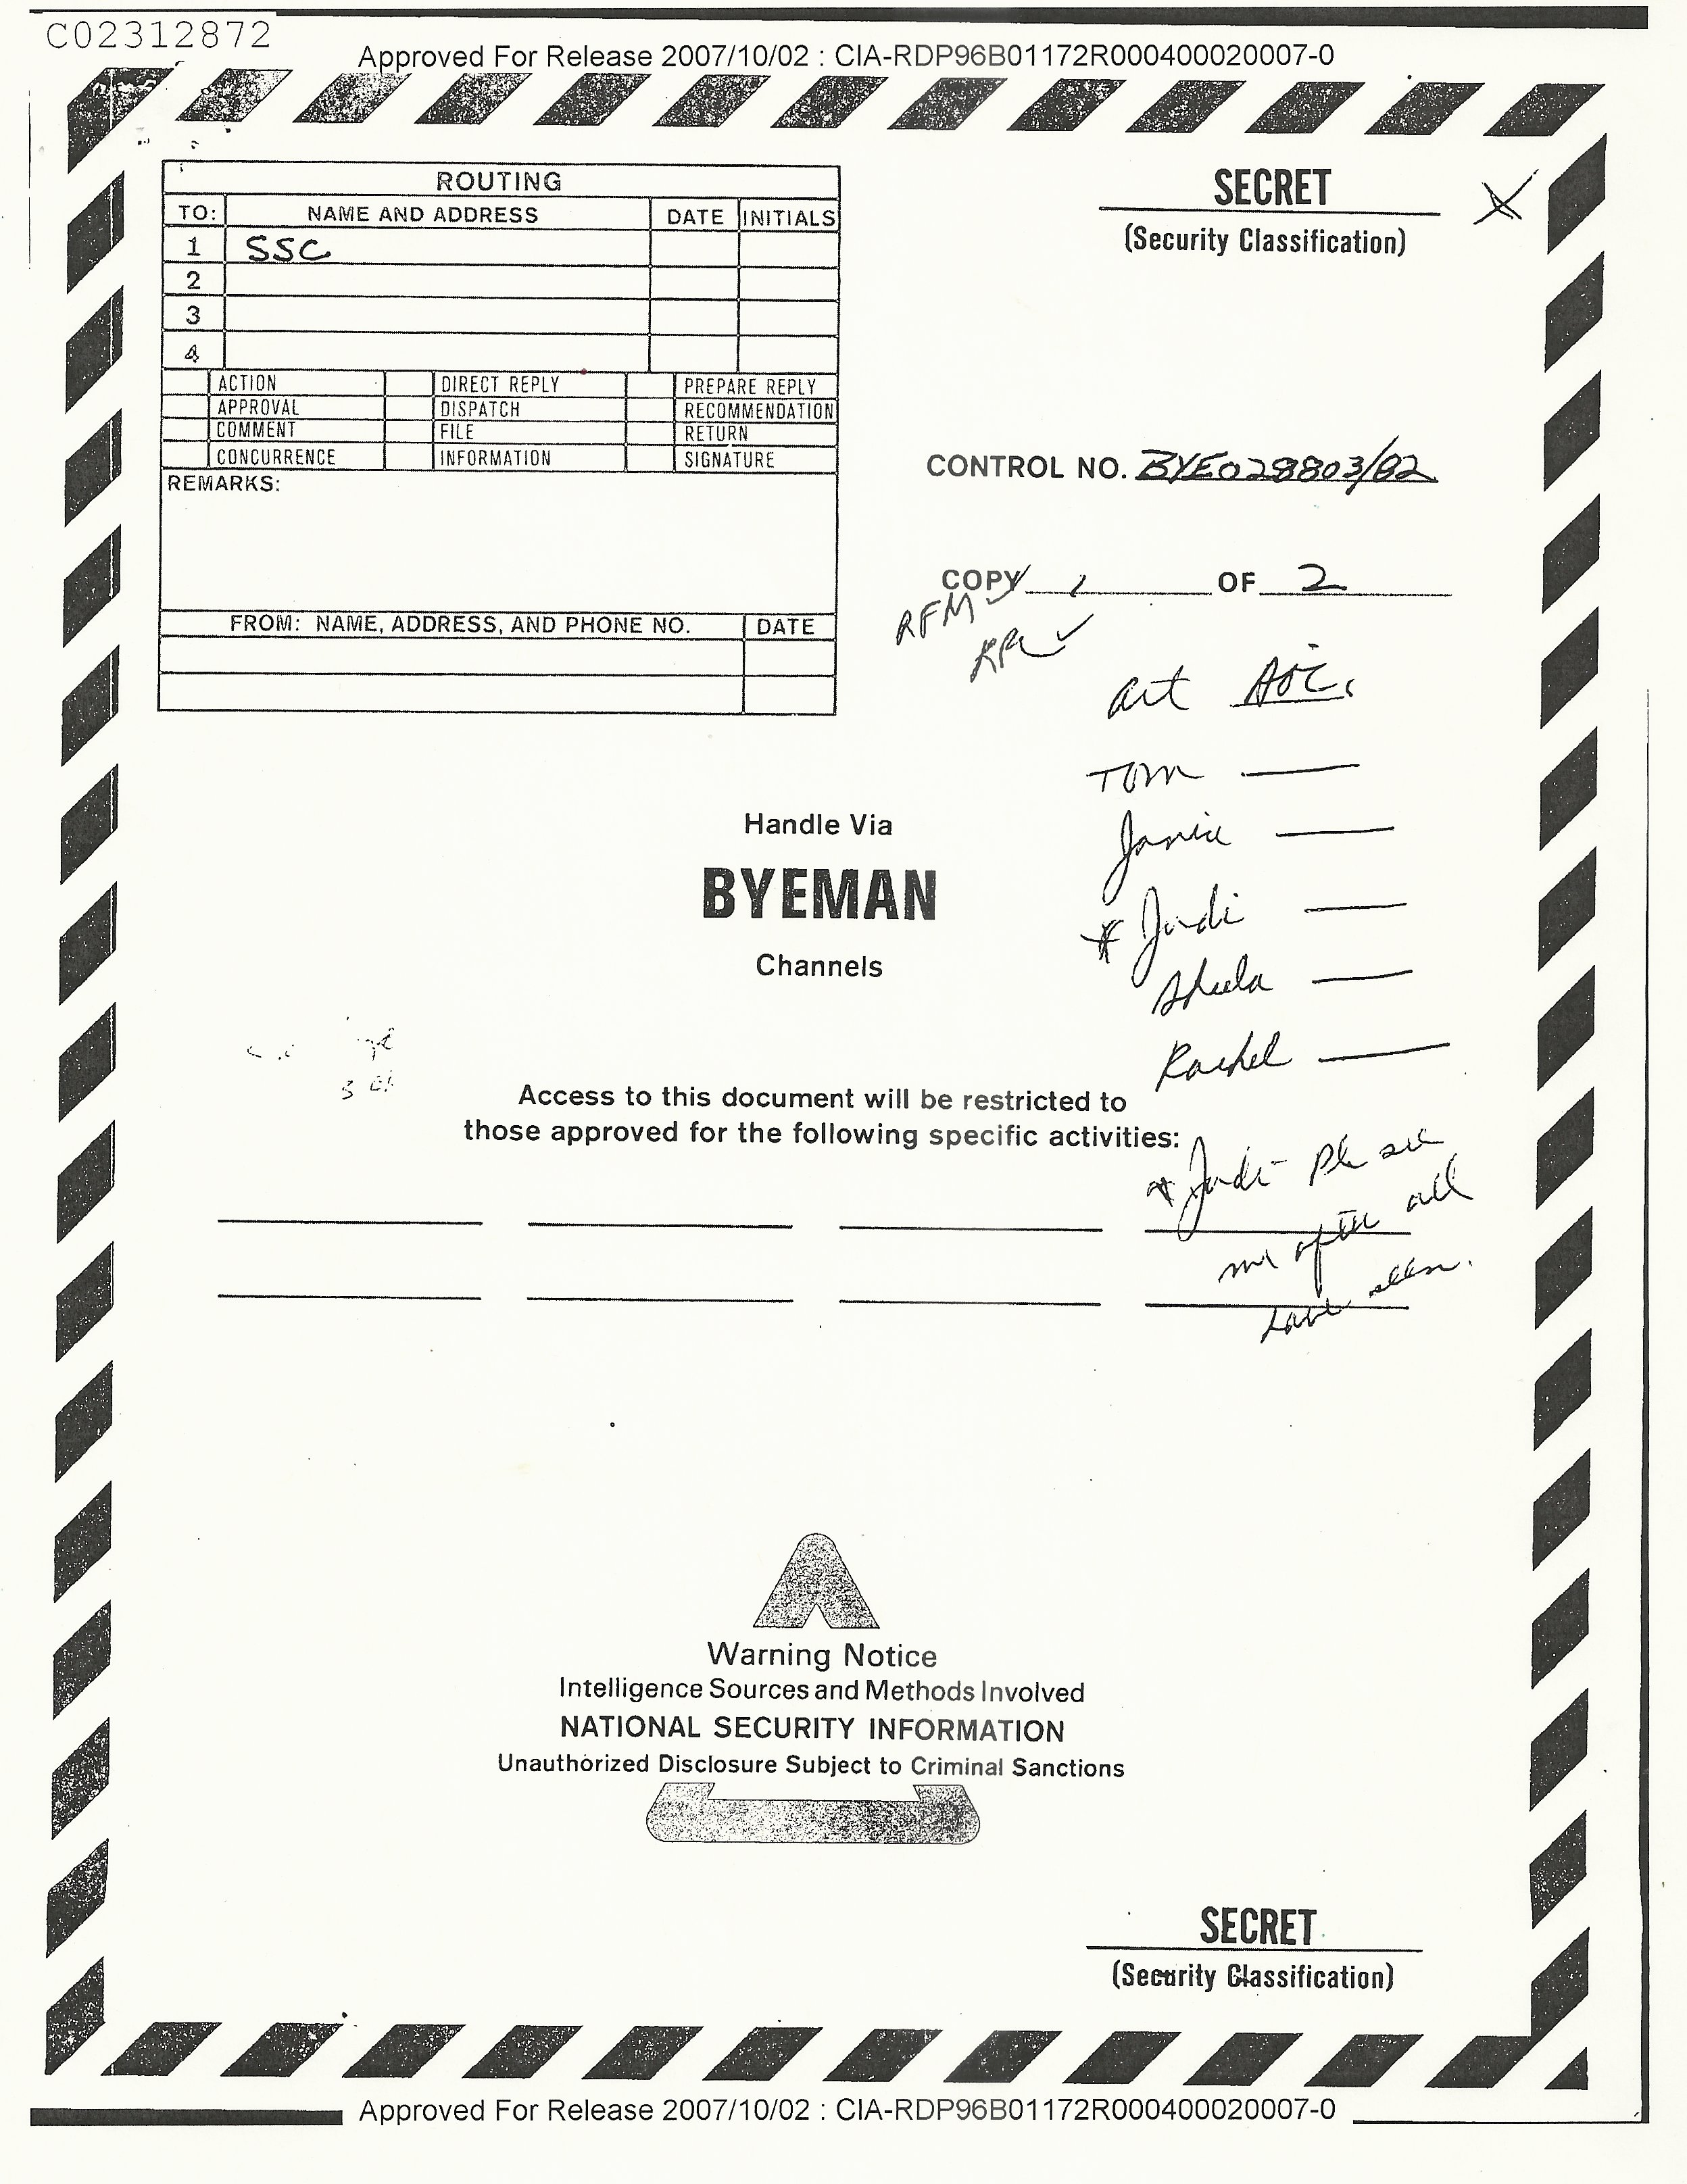 Unclassified Cover Sheet